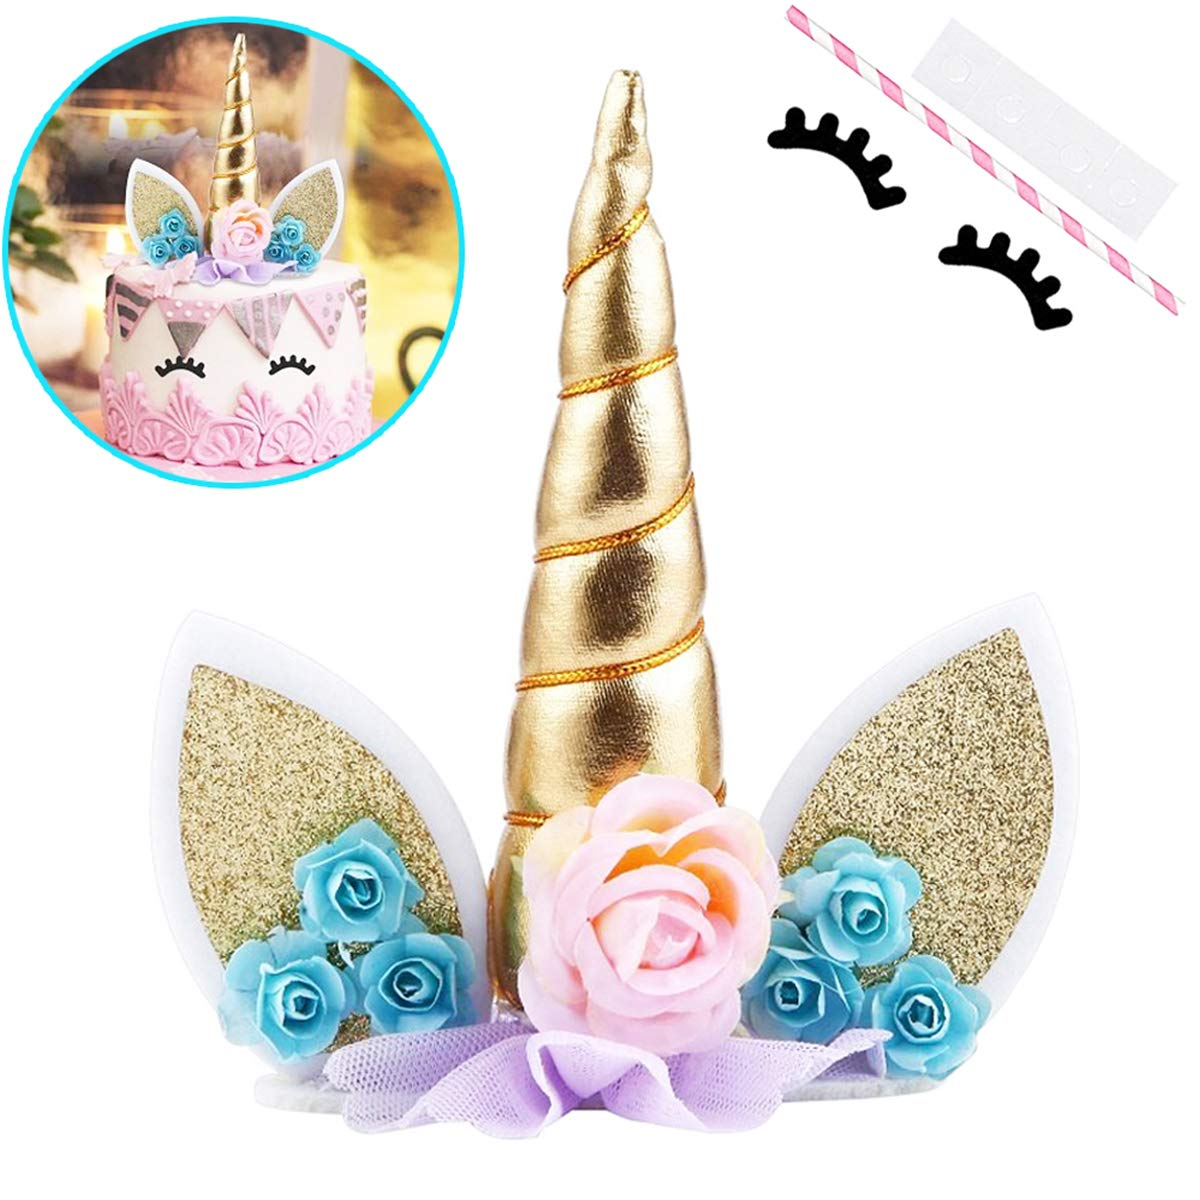 B07D5X6P58 Unicorn Cake Topper with Eyelashes Party Cake Decoration Supplies for Birthday Party, Wedding, Baby Shower, 5.8 inch 71S0dwnWRaL